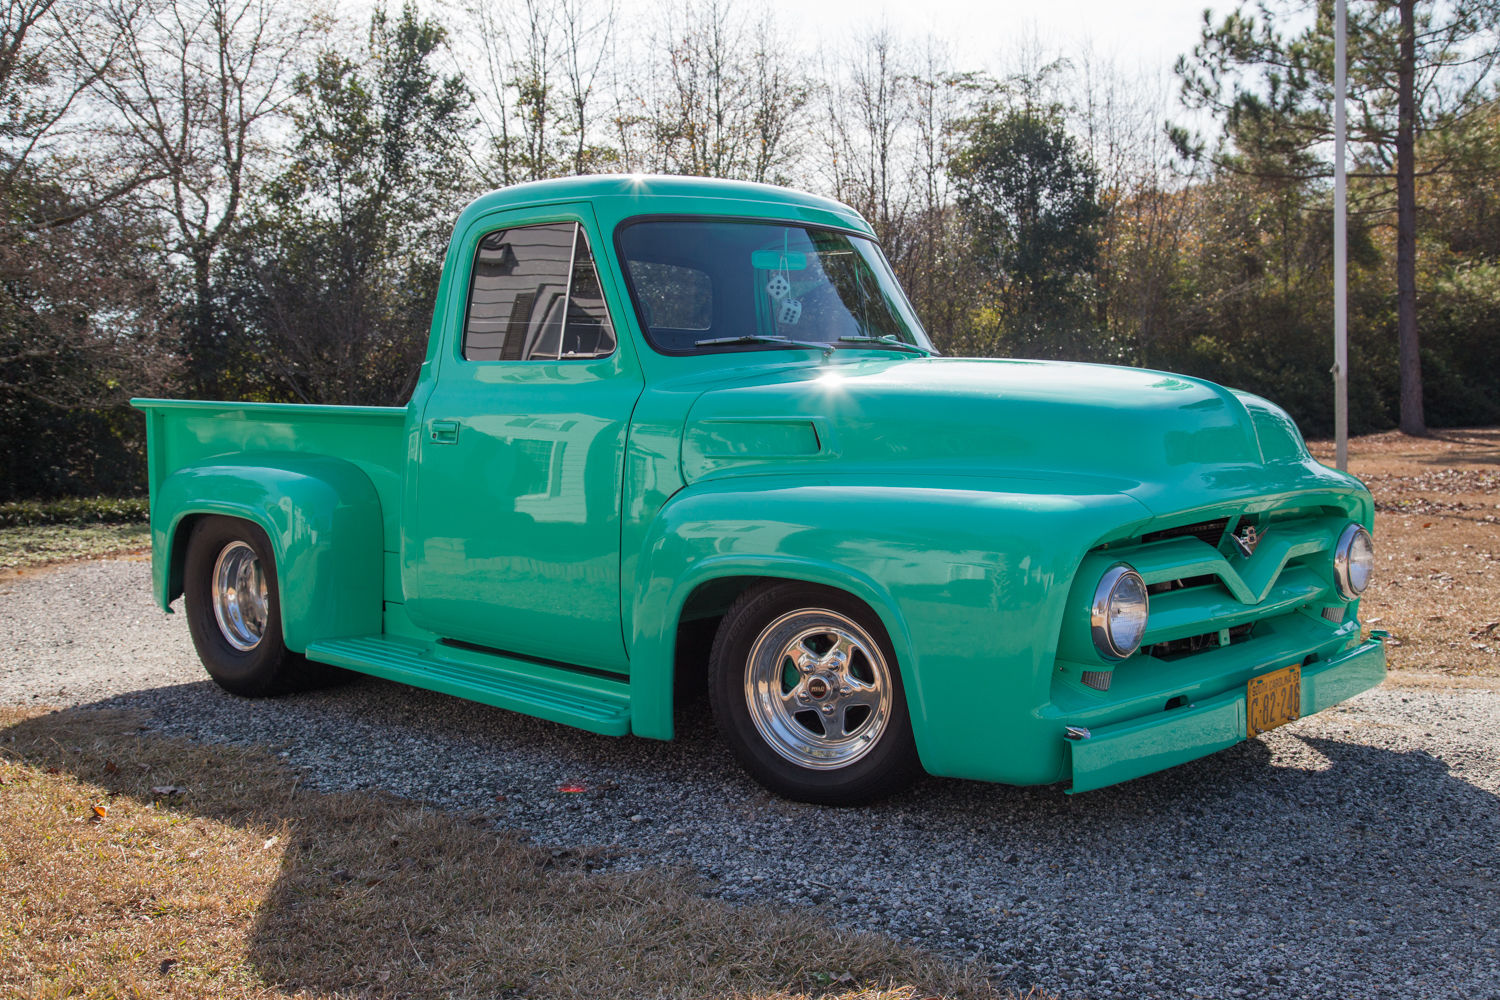 1953 ford f100 prostreet fully restored pickup with many options classic ford f 100 1953 for sale. Black Bedroom Furniture Sets. Home Design Ideas